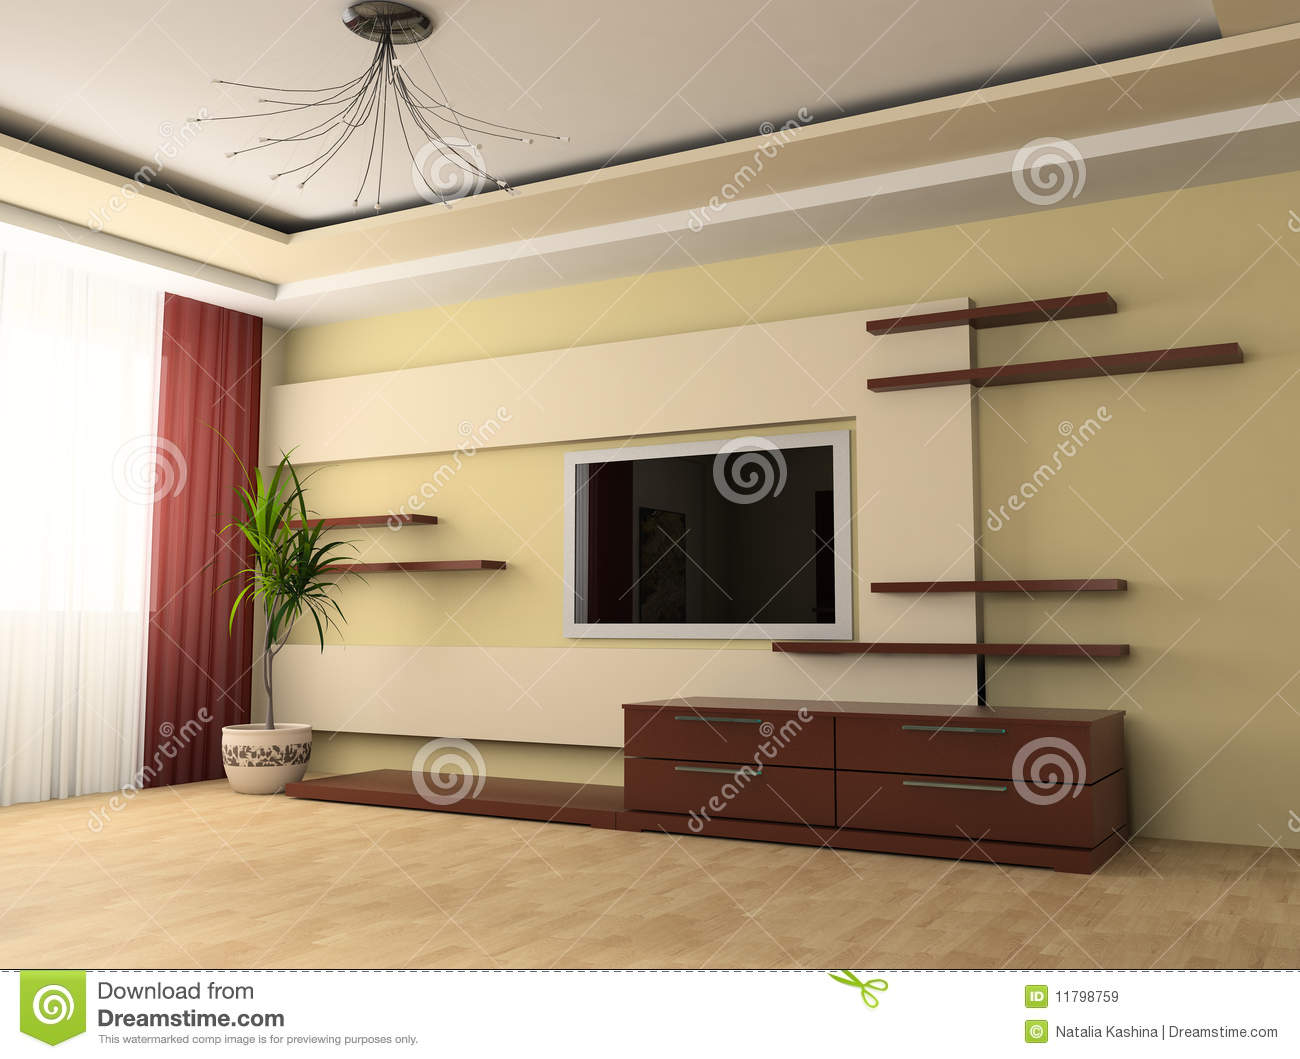 Drawing room royalty free stock images image 11798759 for Drawing room design pictures